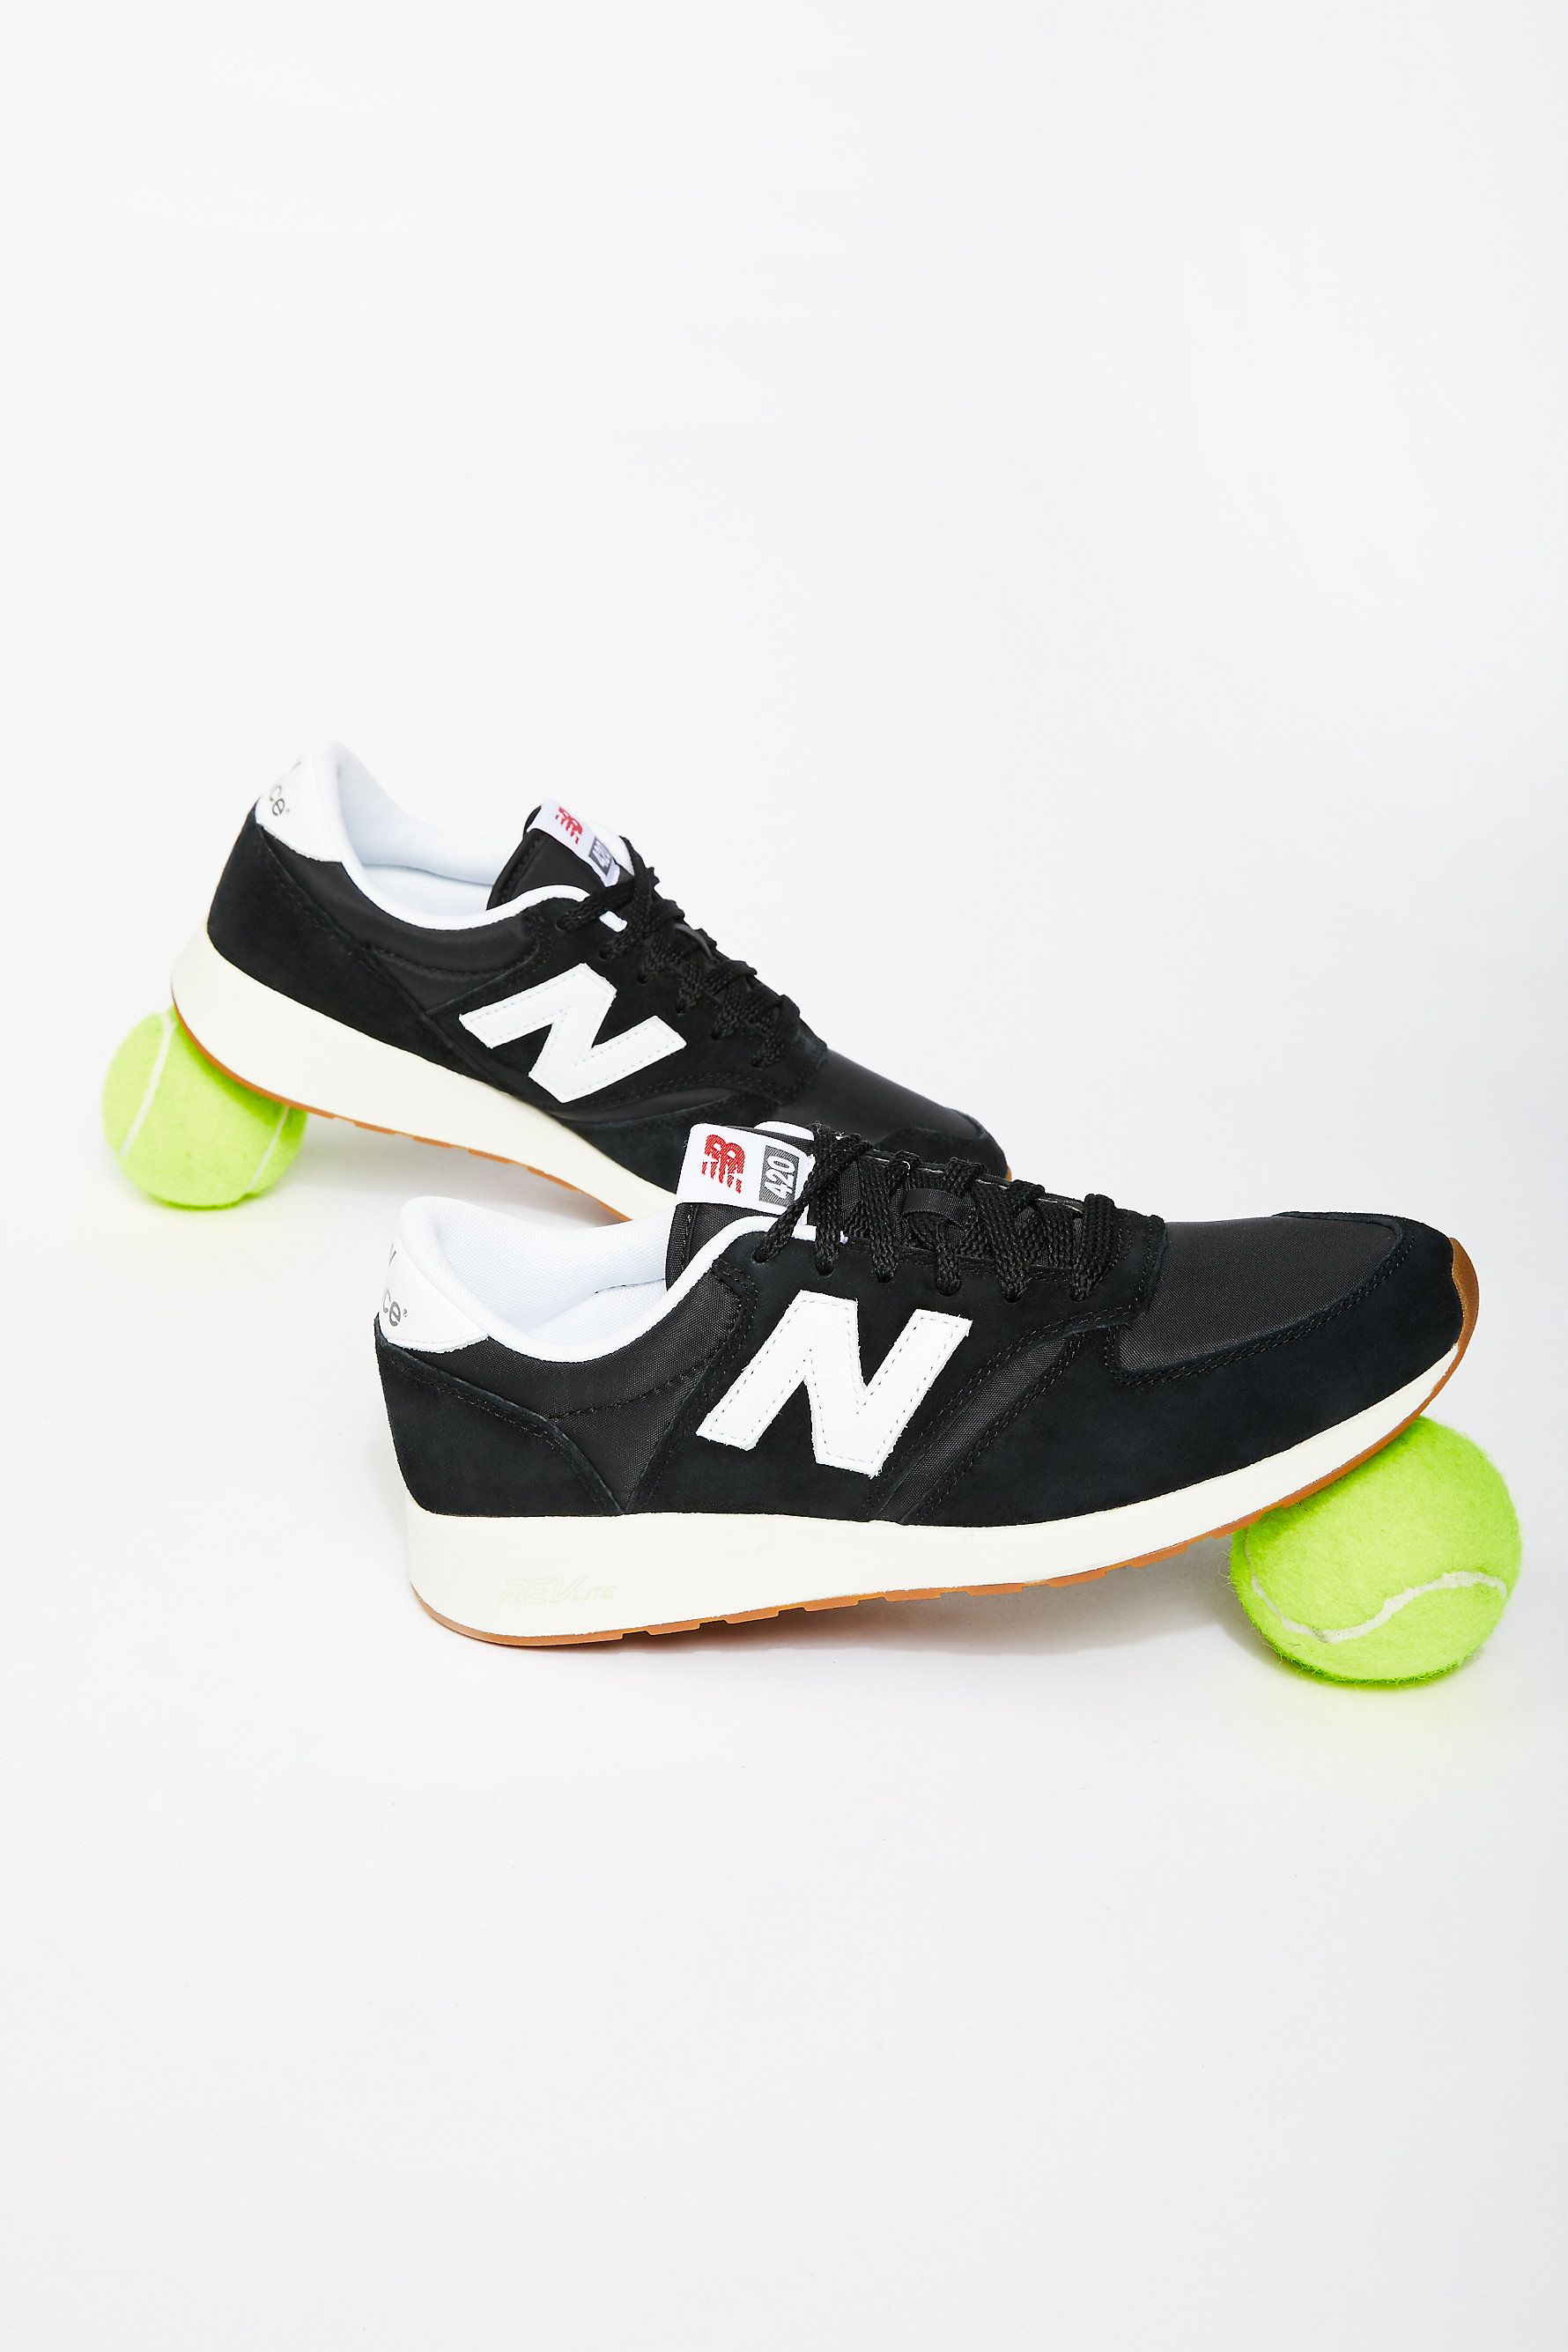 new balance 420 unisex sizing